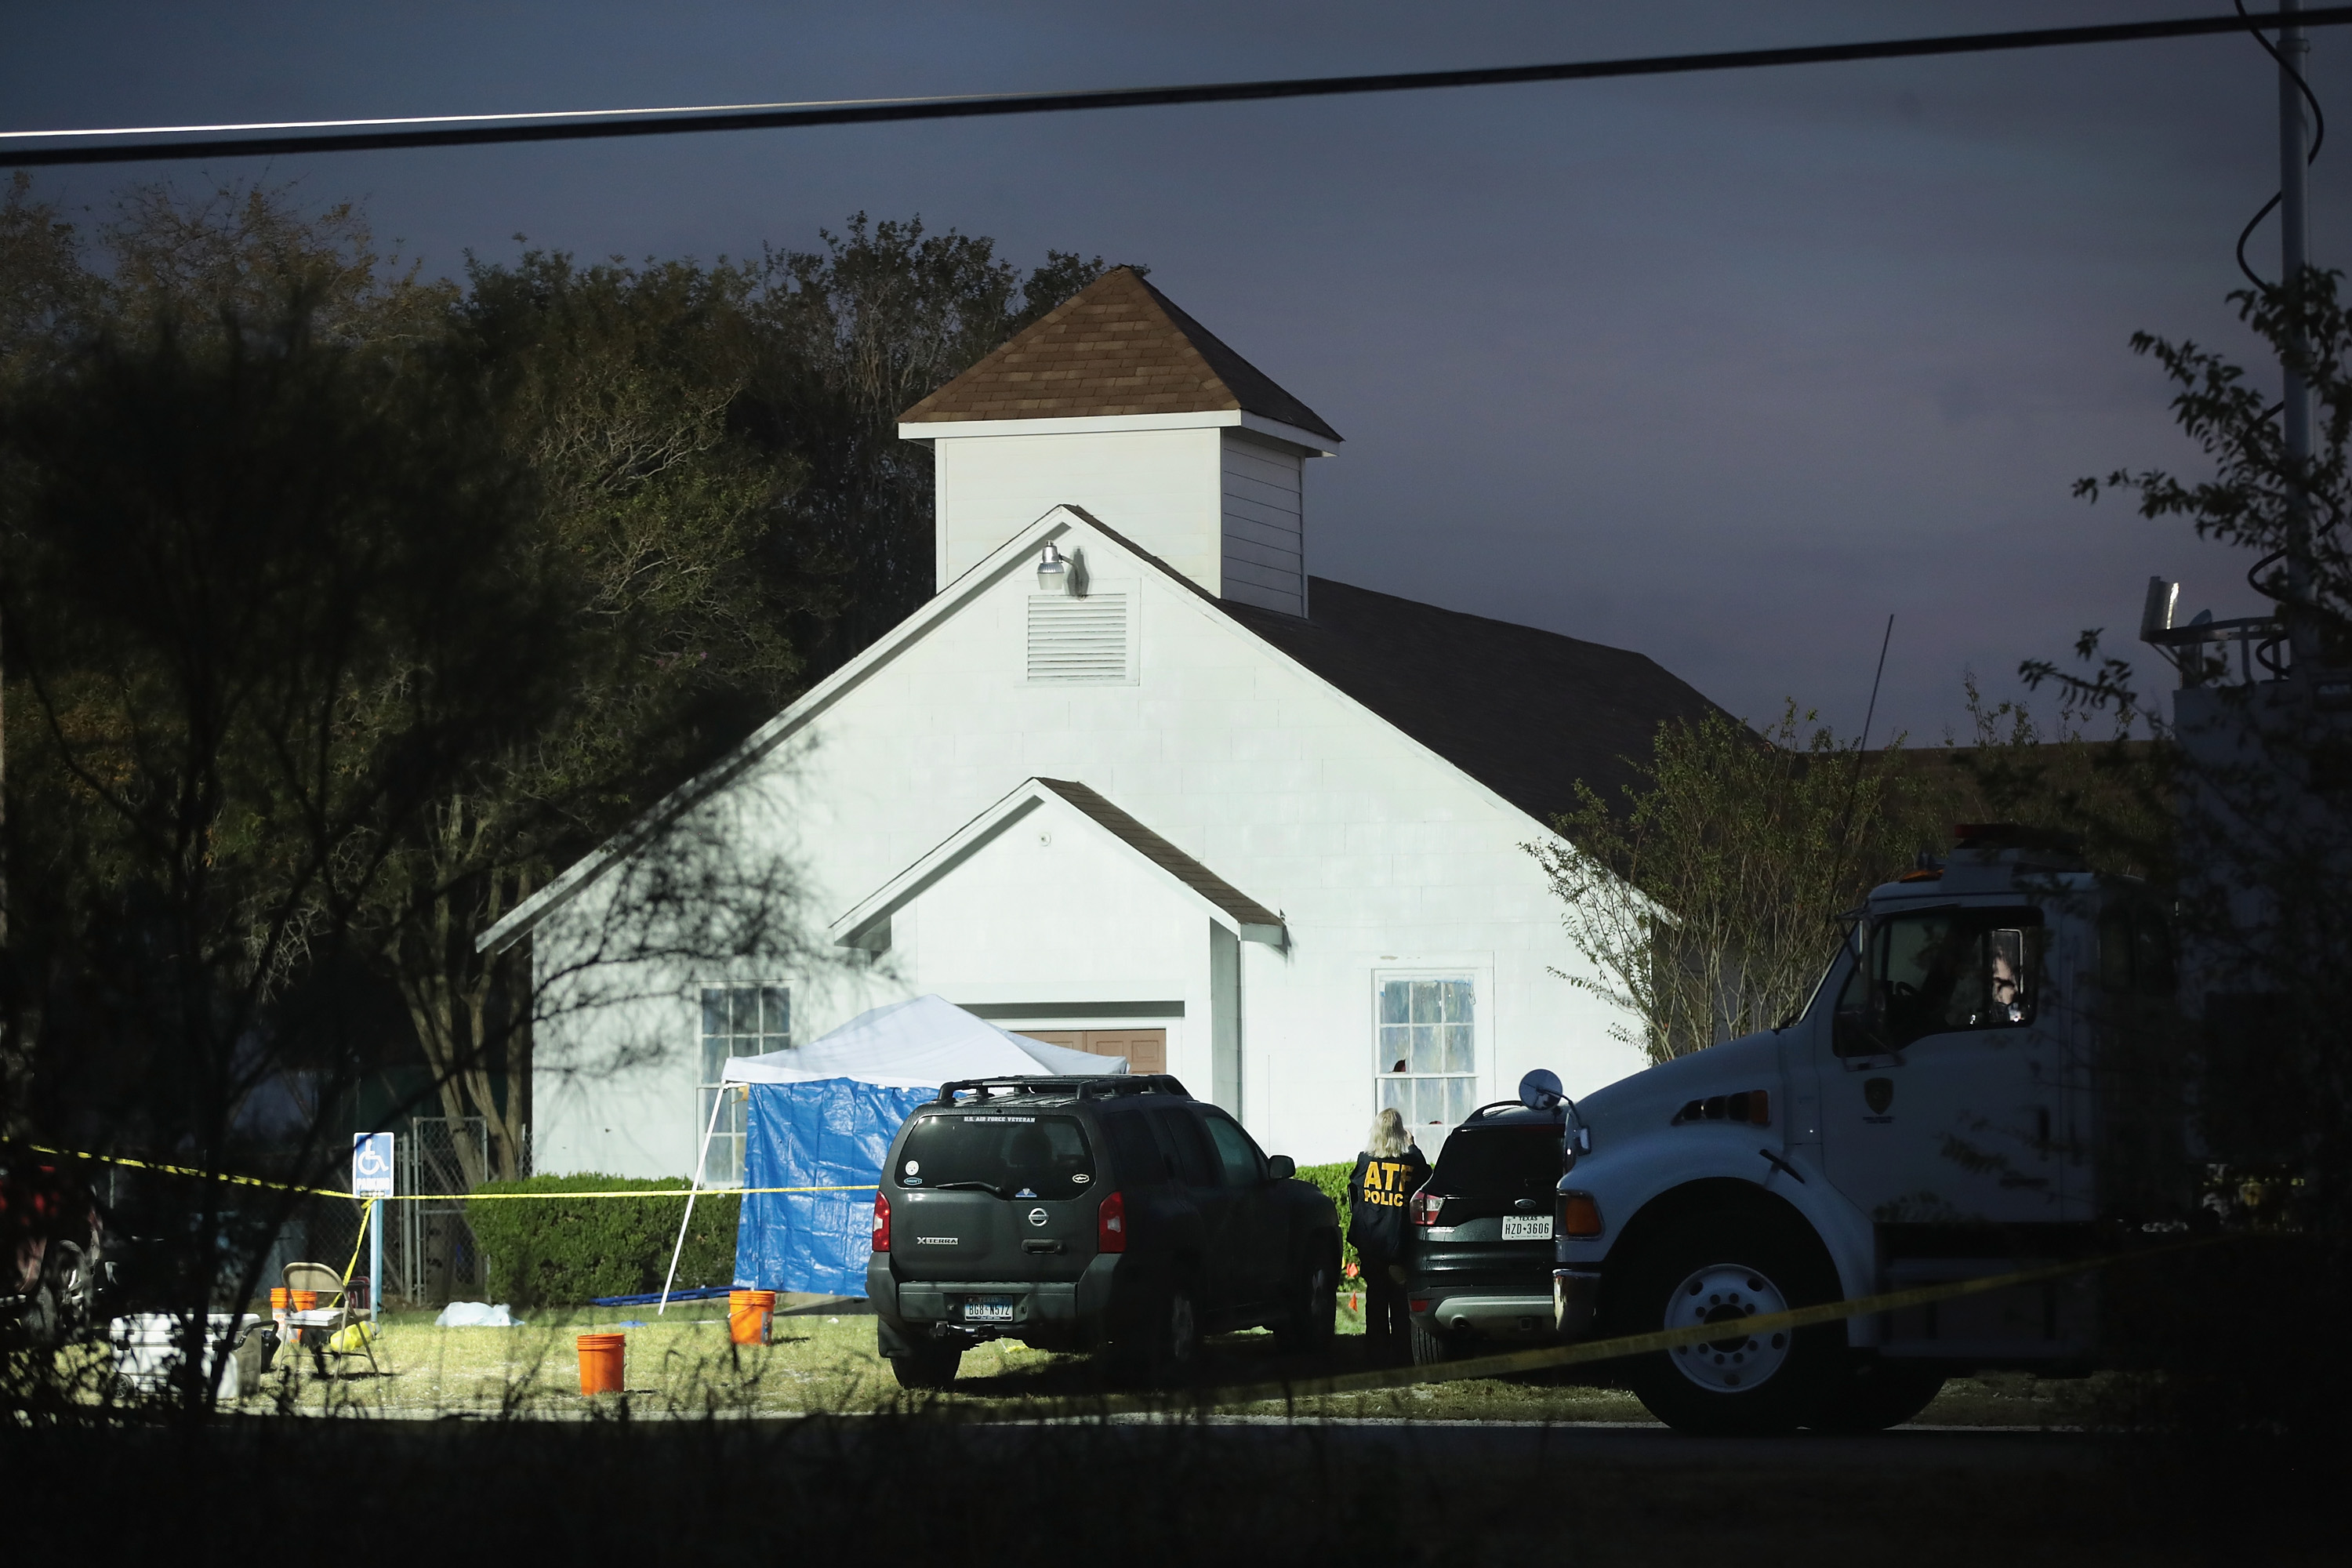 SUTHERLAND SPRINGS, TX - NOVEMBER 06:  Law enforcement officials continue their investigation at First Baptist Church of Sutherland Springs as the sun begins to rise on November 6, 2017 in Sutherland Springs, Texas. Yesterday a gunman, Devin Patrick Kelley, killed 26 people at the church and wounded many more when he opened fire during a Sunday service.  (Photo by Scott Olson/Getty Images)